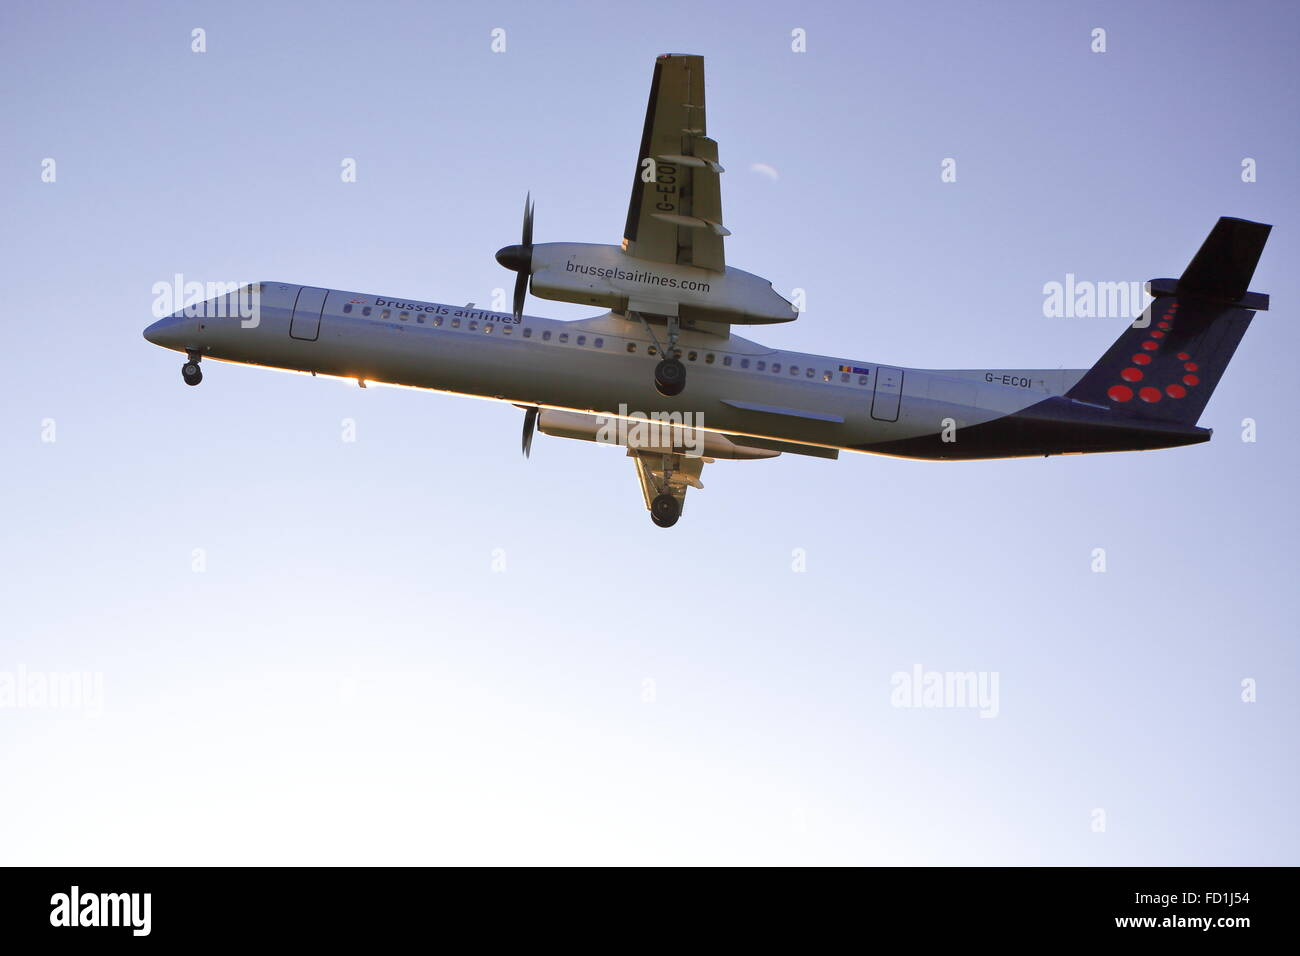 Brussels Airlines Dash-8 G-ECOI landing at Birmingham Airport, UK - Stock Image